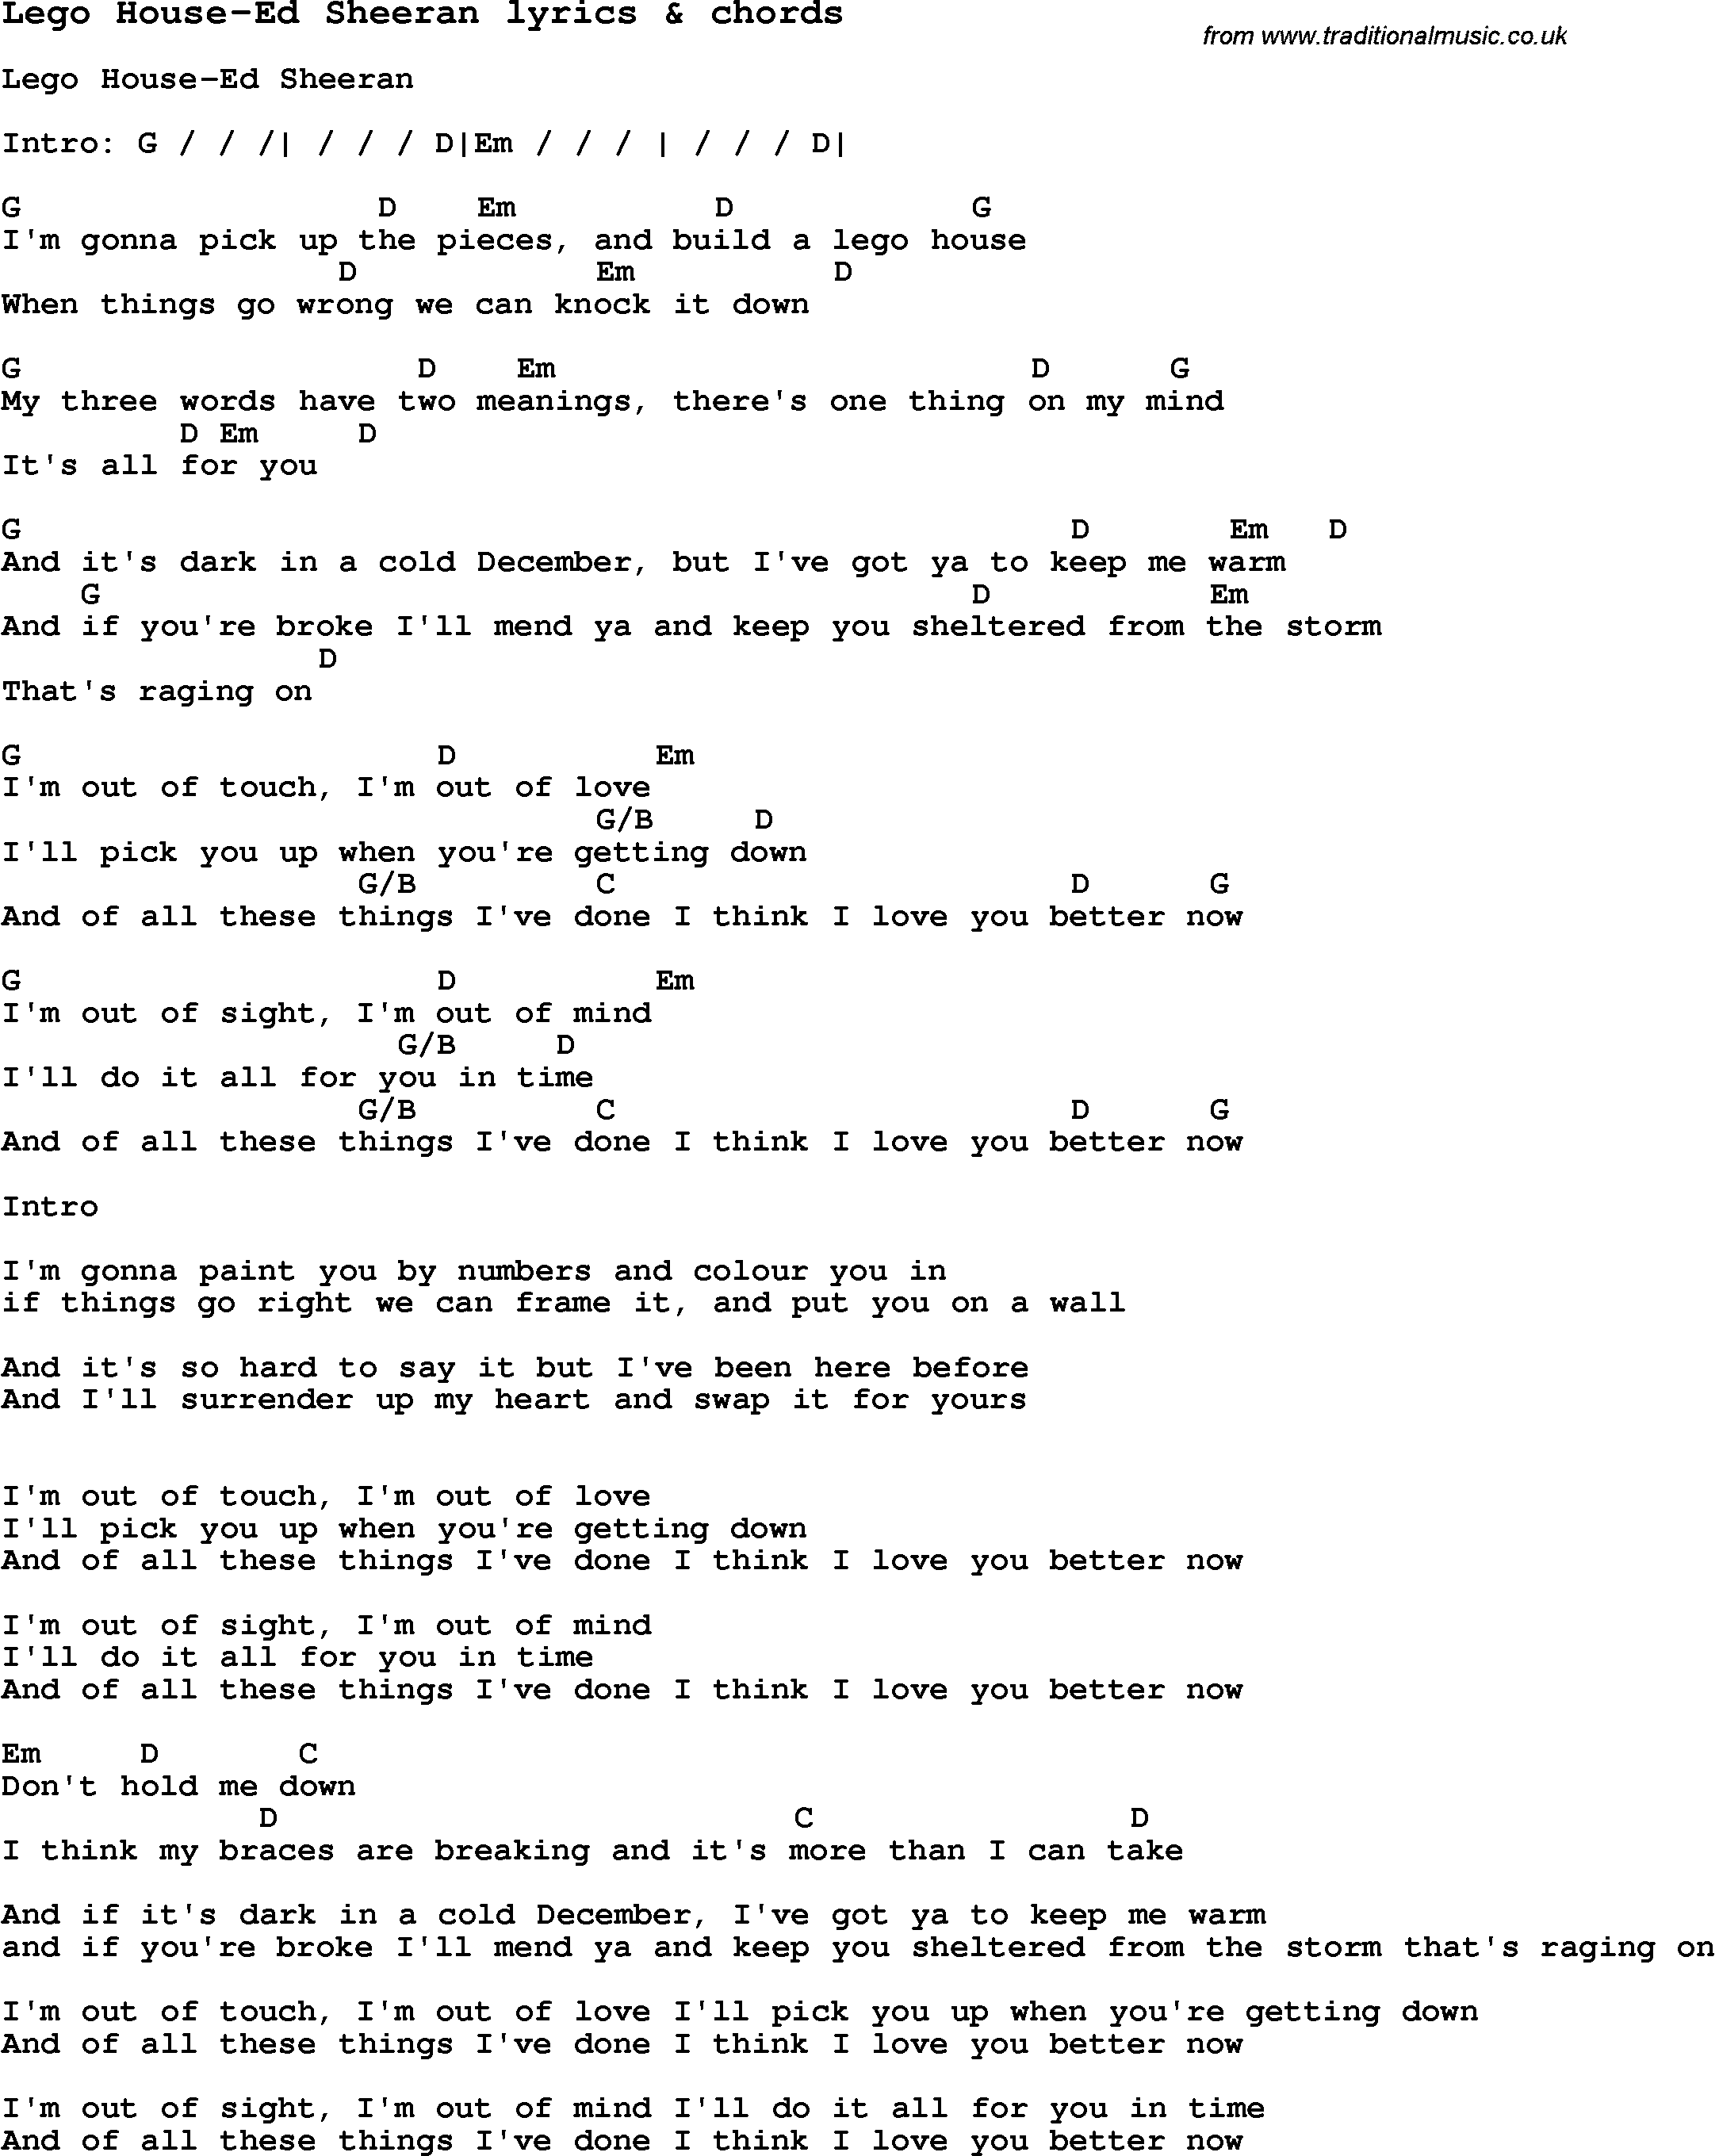 Love song lyrics for lego house ed sheeran with chords for love song lyrics for lego house ed sheeran with chords for ukulele guitar hexwebz Choice Image